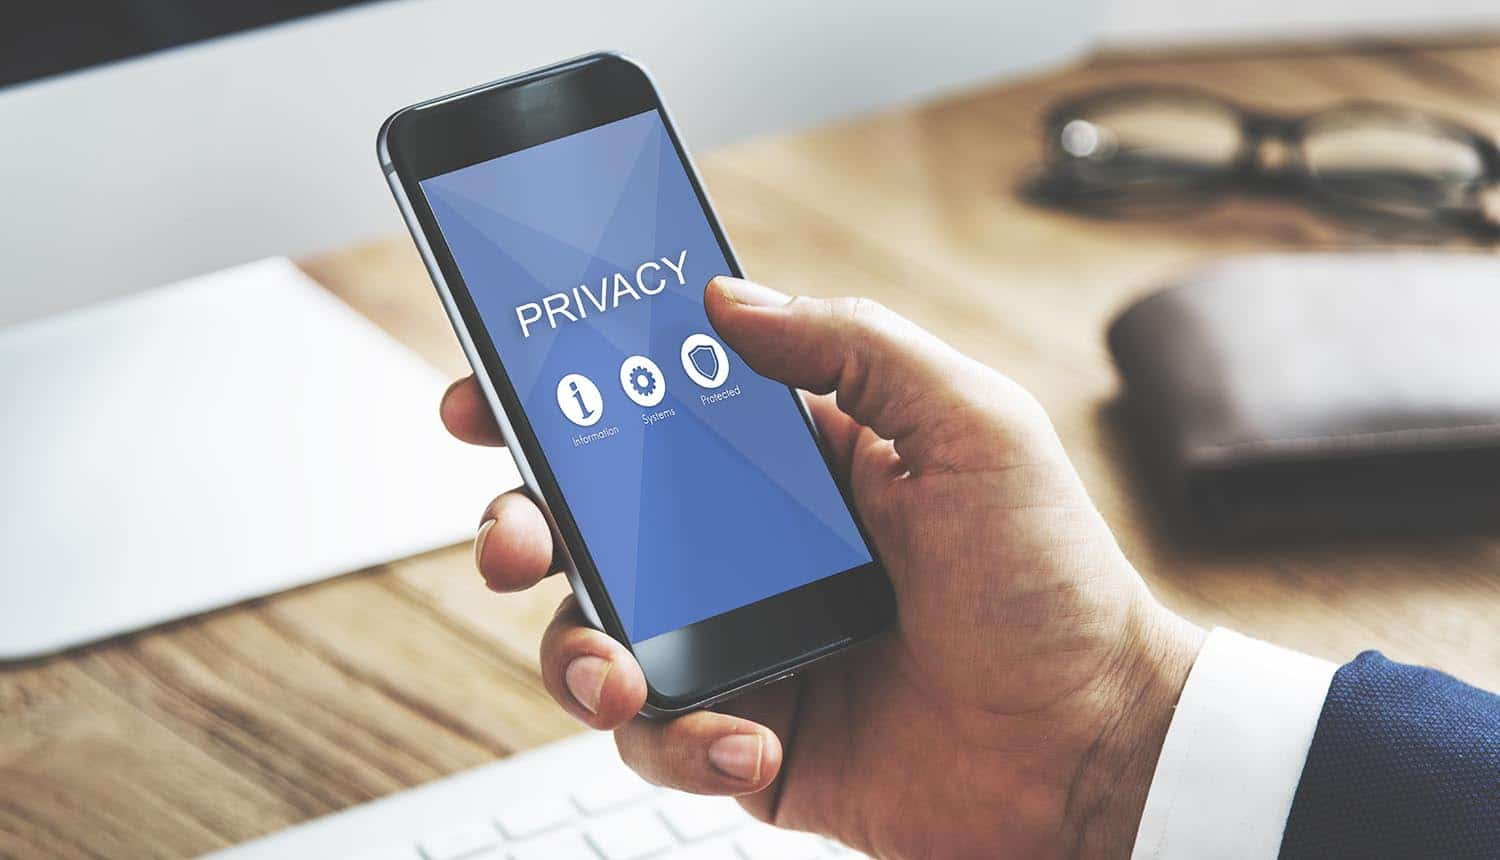 Privacy screen on mobile phone showing need to stay safe and secure our data